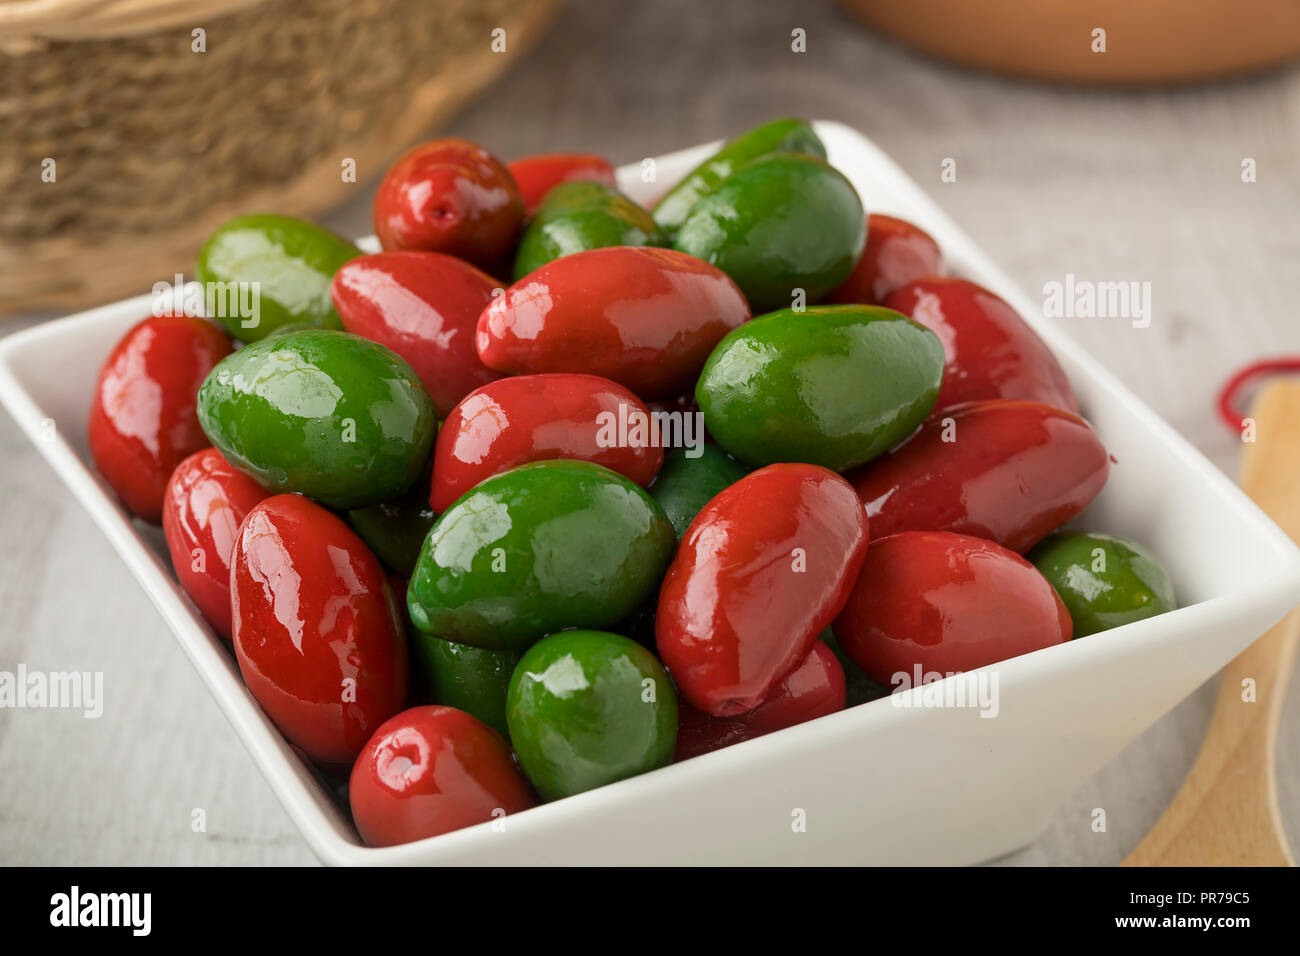 Bowl with red and green Italan bella di cerignola olives - Stock Image